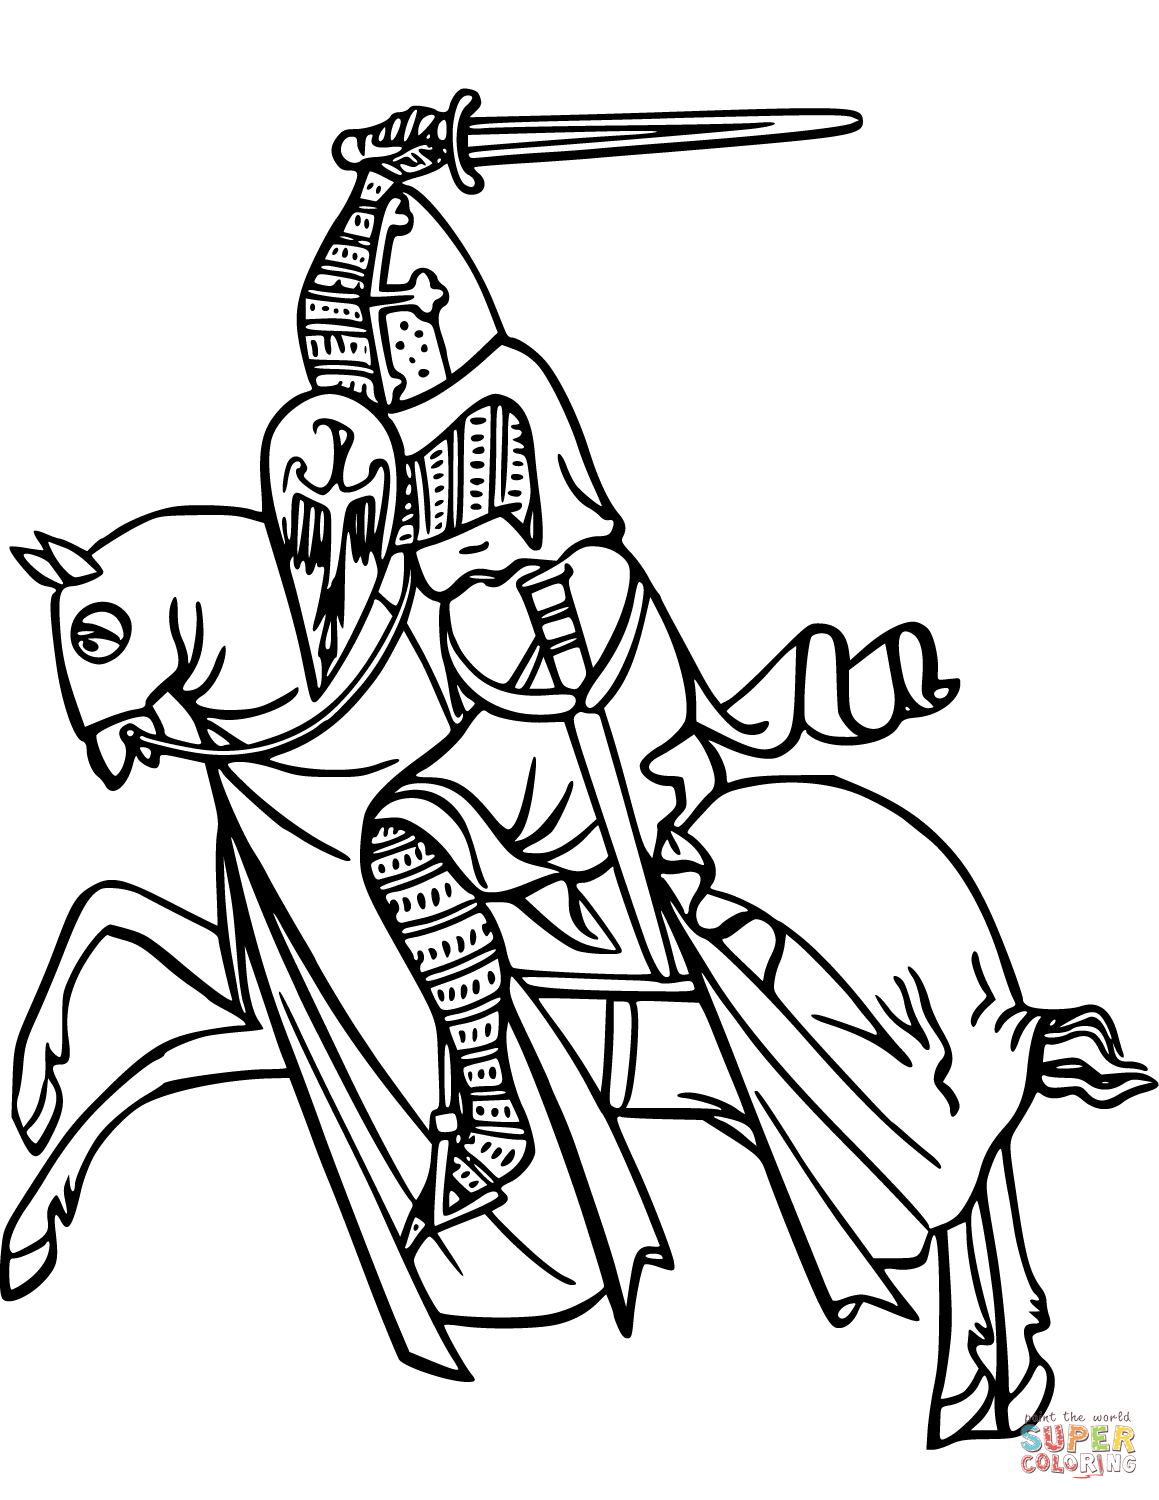 knight on horse coloring page brave knights horse coloring pages drawings line art knight on horse coloring page